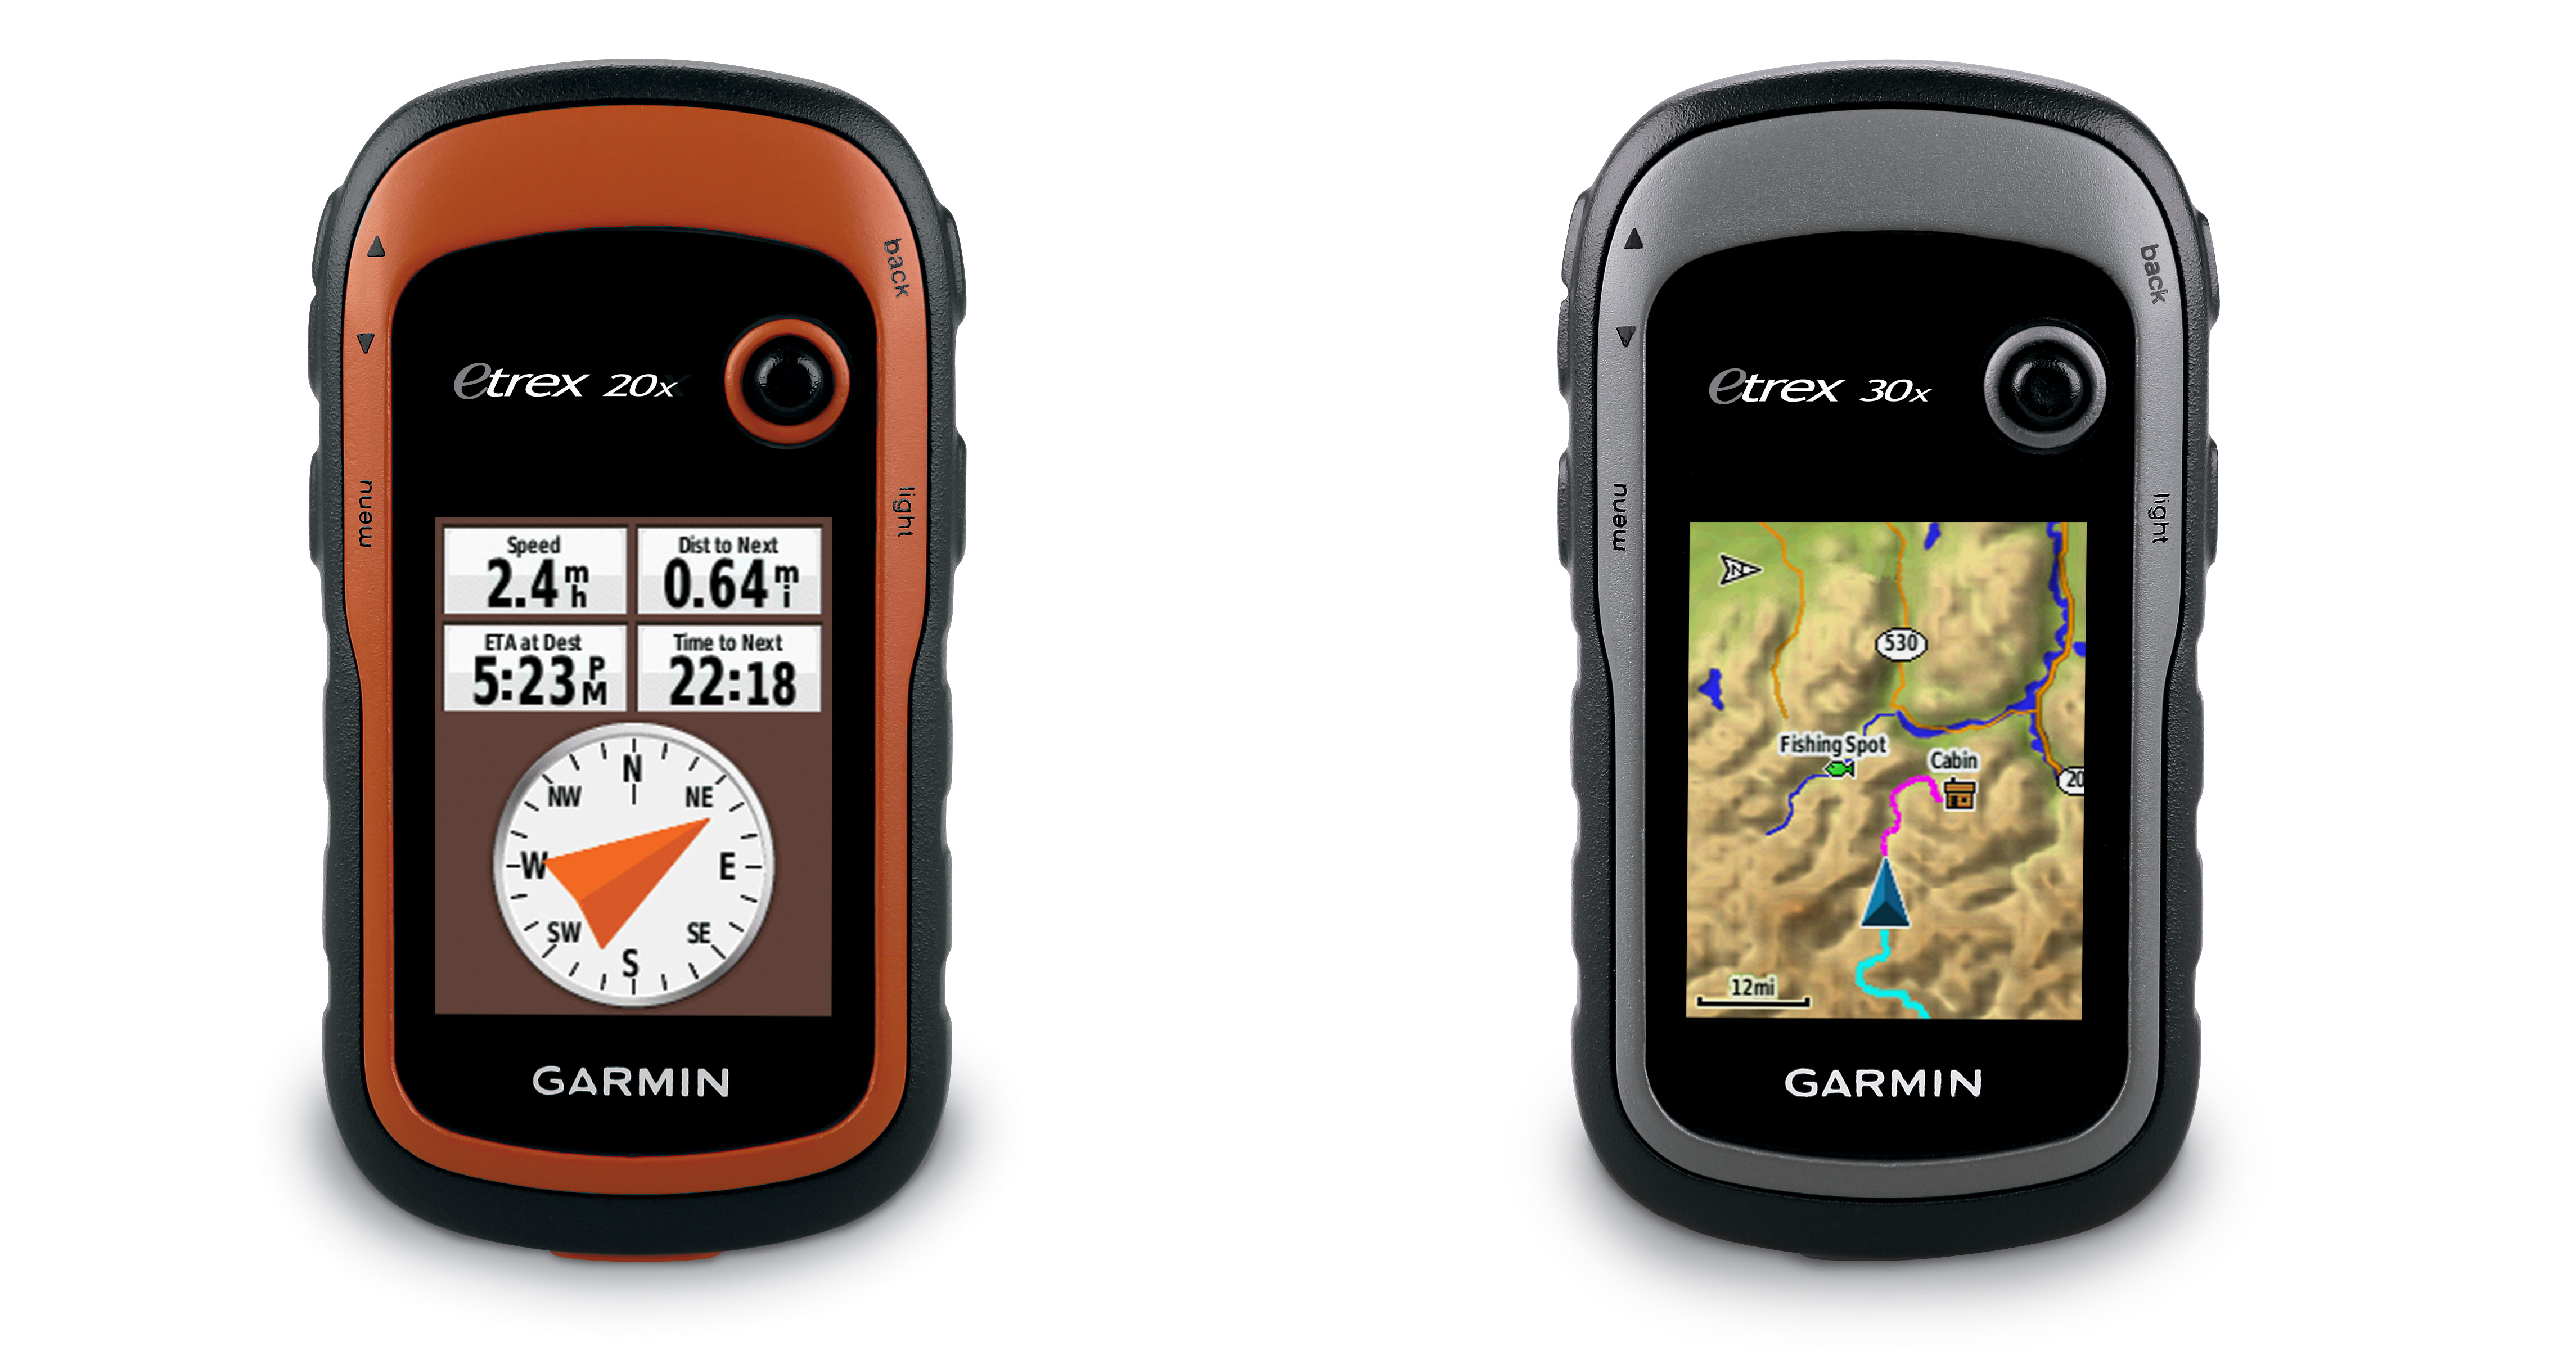 introducing the garmin etrex 20x and 30x outdoor handhelds rh newsroom garmin com garmin etrex 20 user manual pdf garmin etrex 20 owners manual